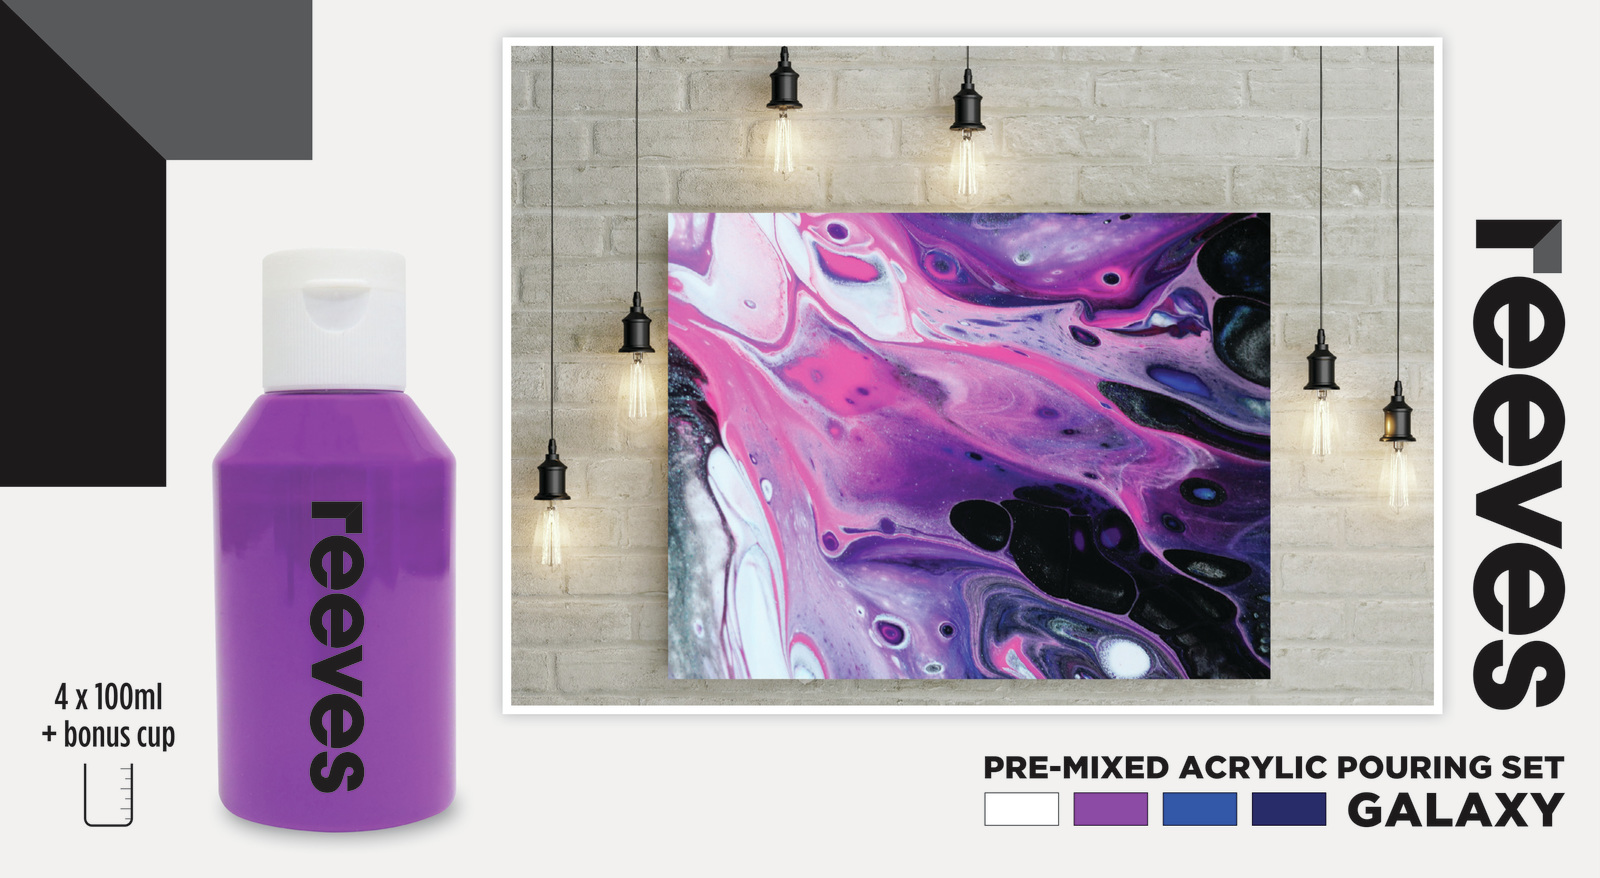 Reeves: Pre-Mixed Acrylic Pour Paint - Galaxy (Set 4 /100ml) image